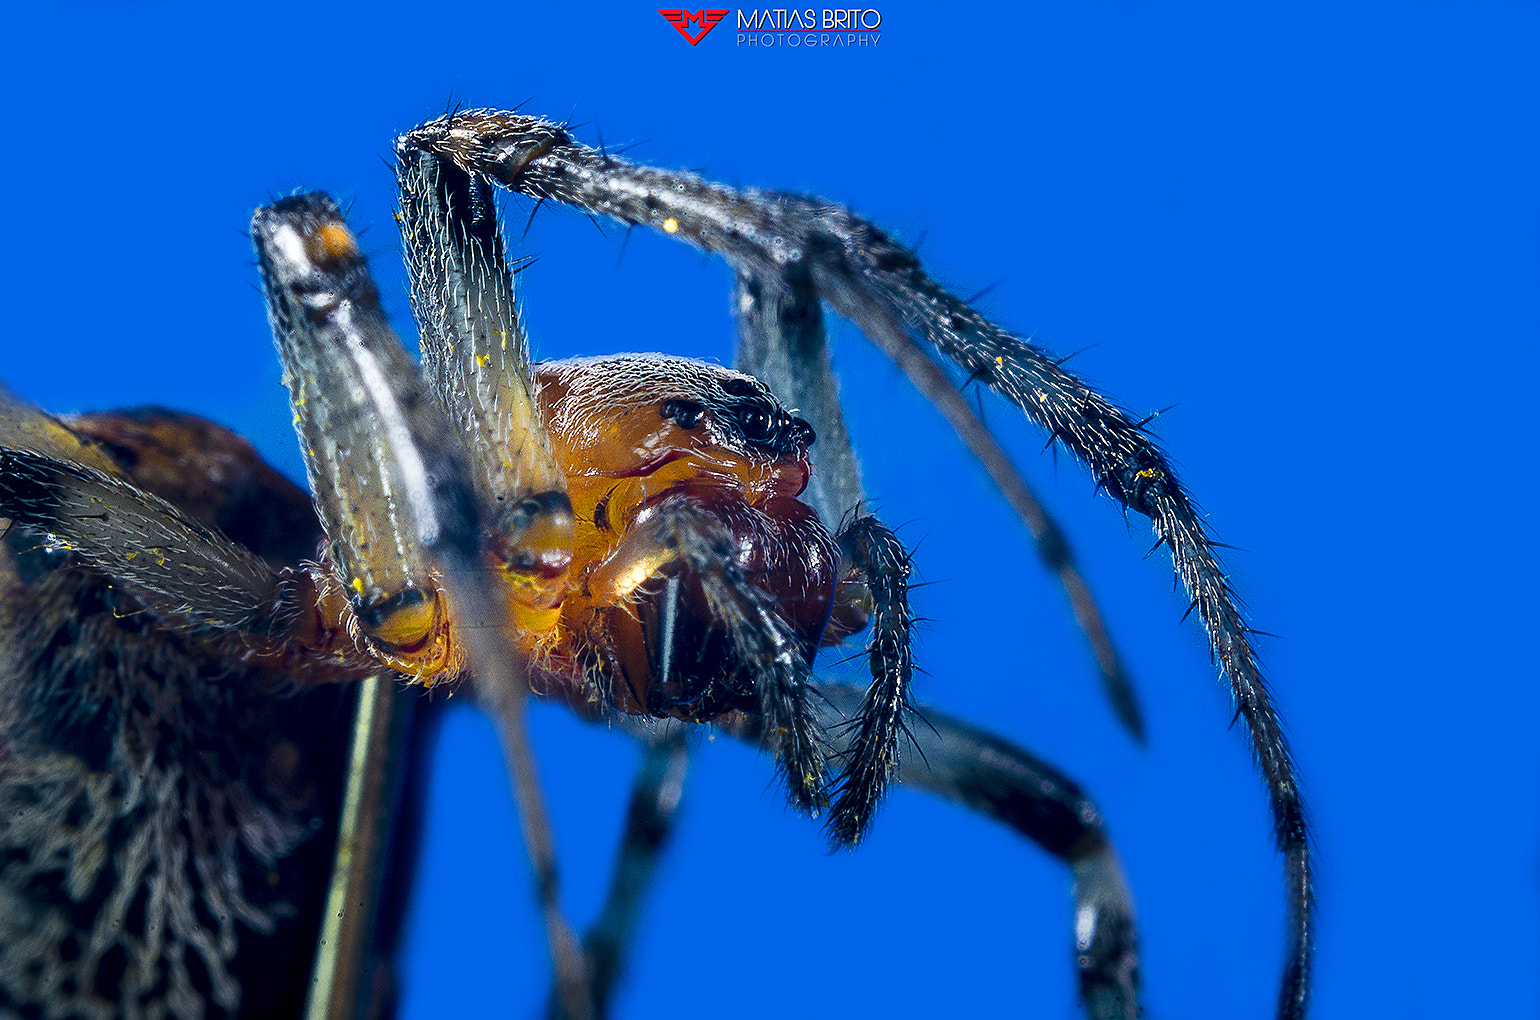 Photograph SPIDER 1 by Matias Brito on 500px